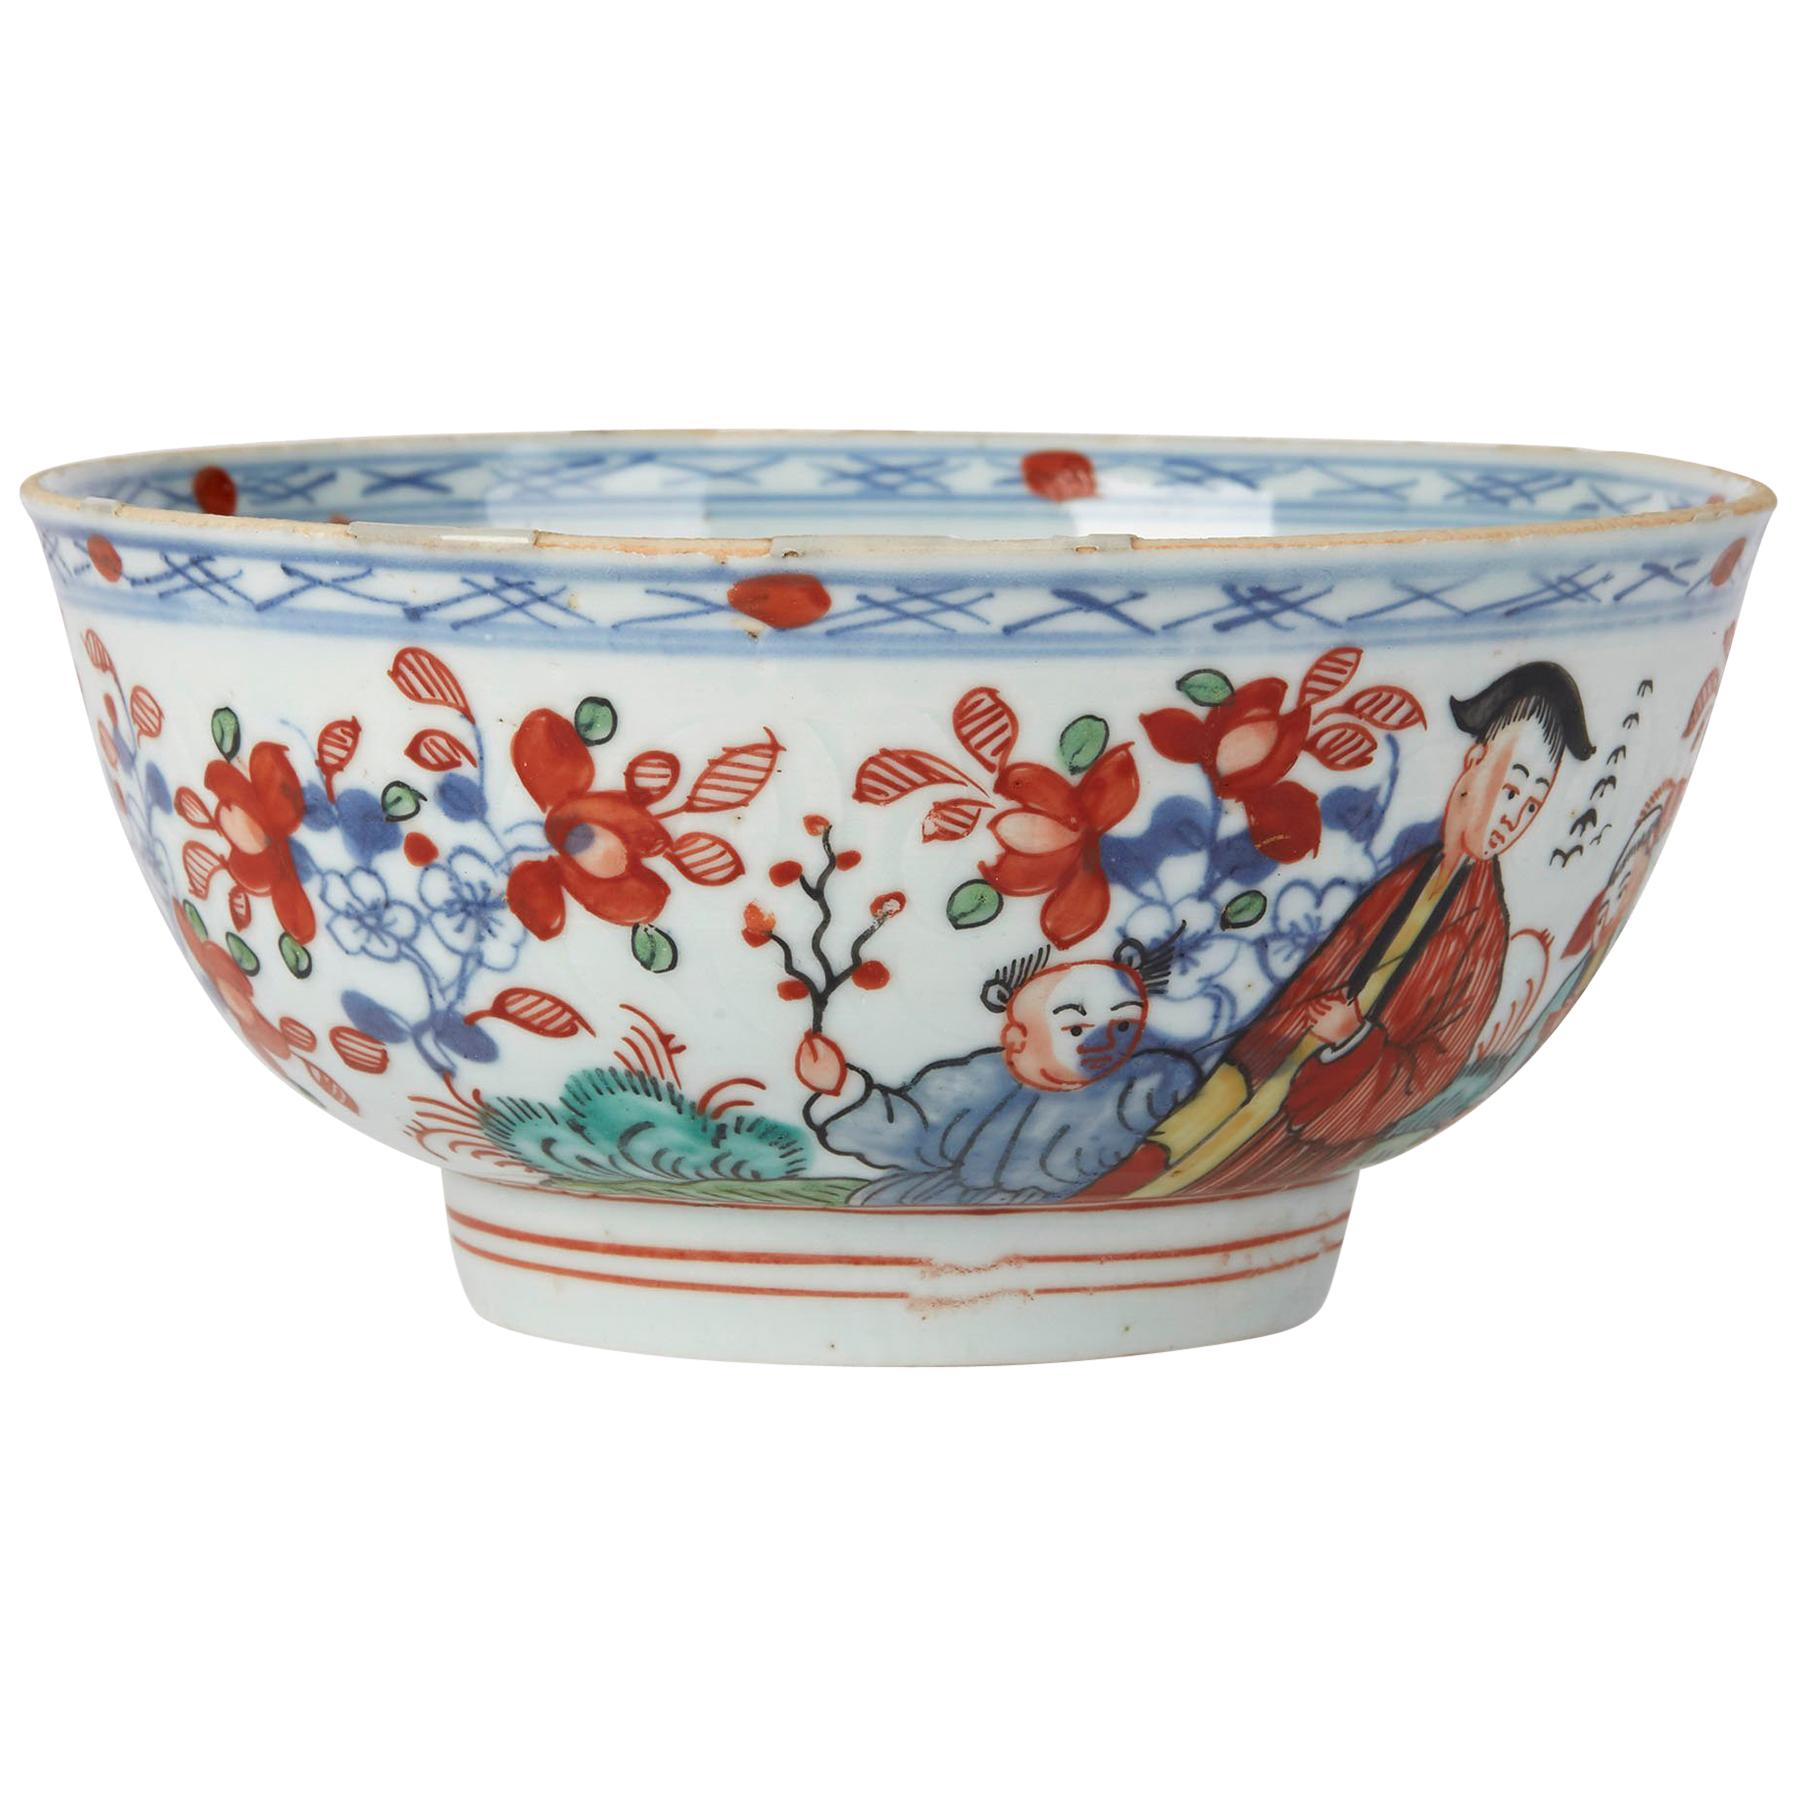 Chinese Qianlong Overdecorated Porcelain Bowl, 18th Century